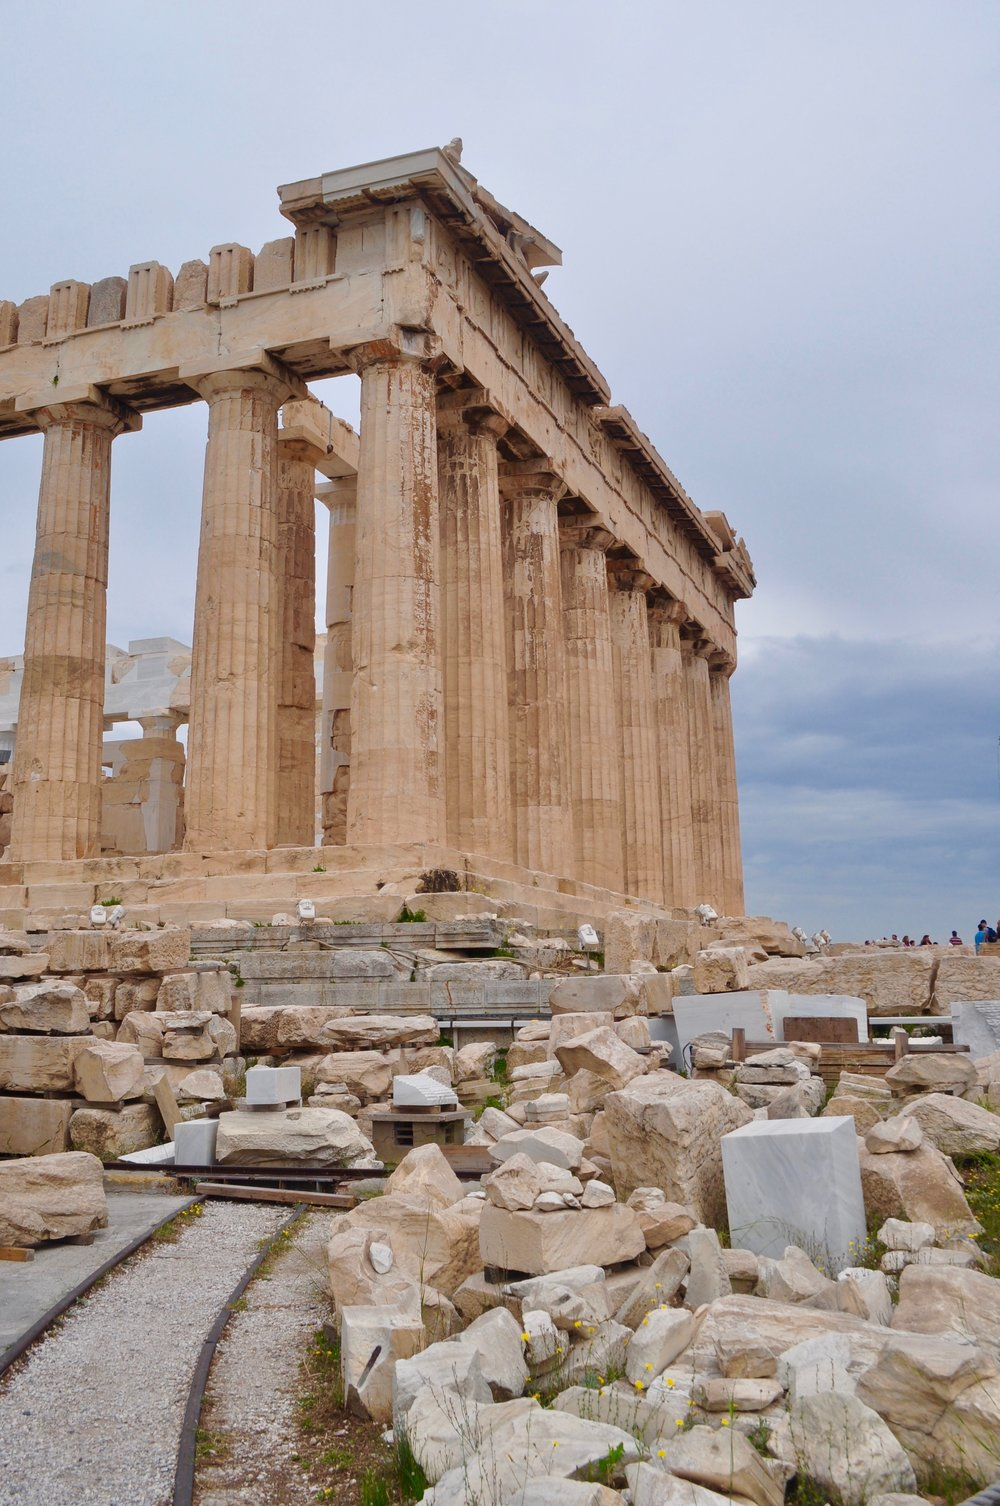 Exploring the Greek Isles on a Cruise - A Happy Passport #greece #athens #acropolis